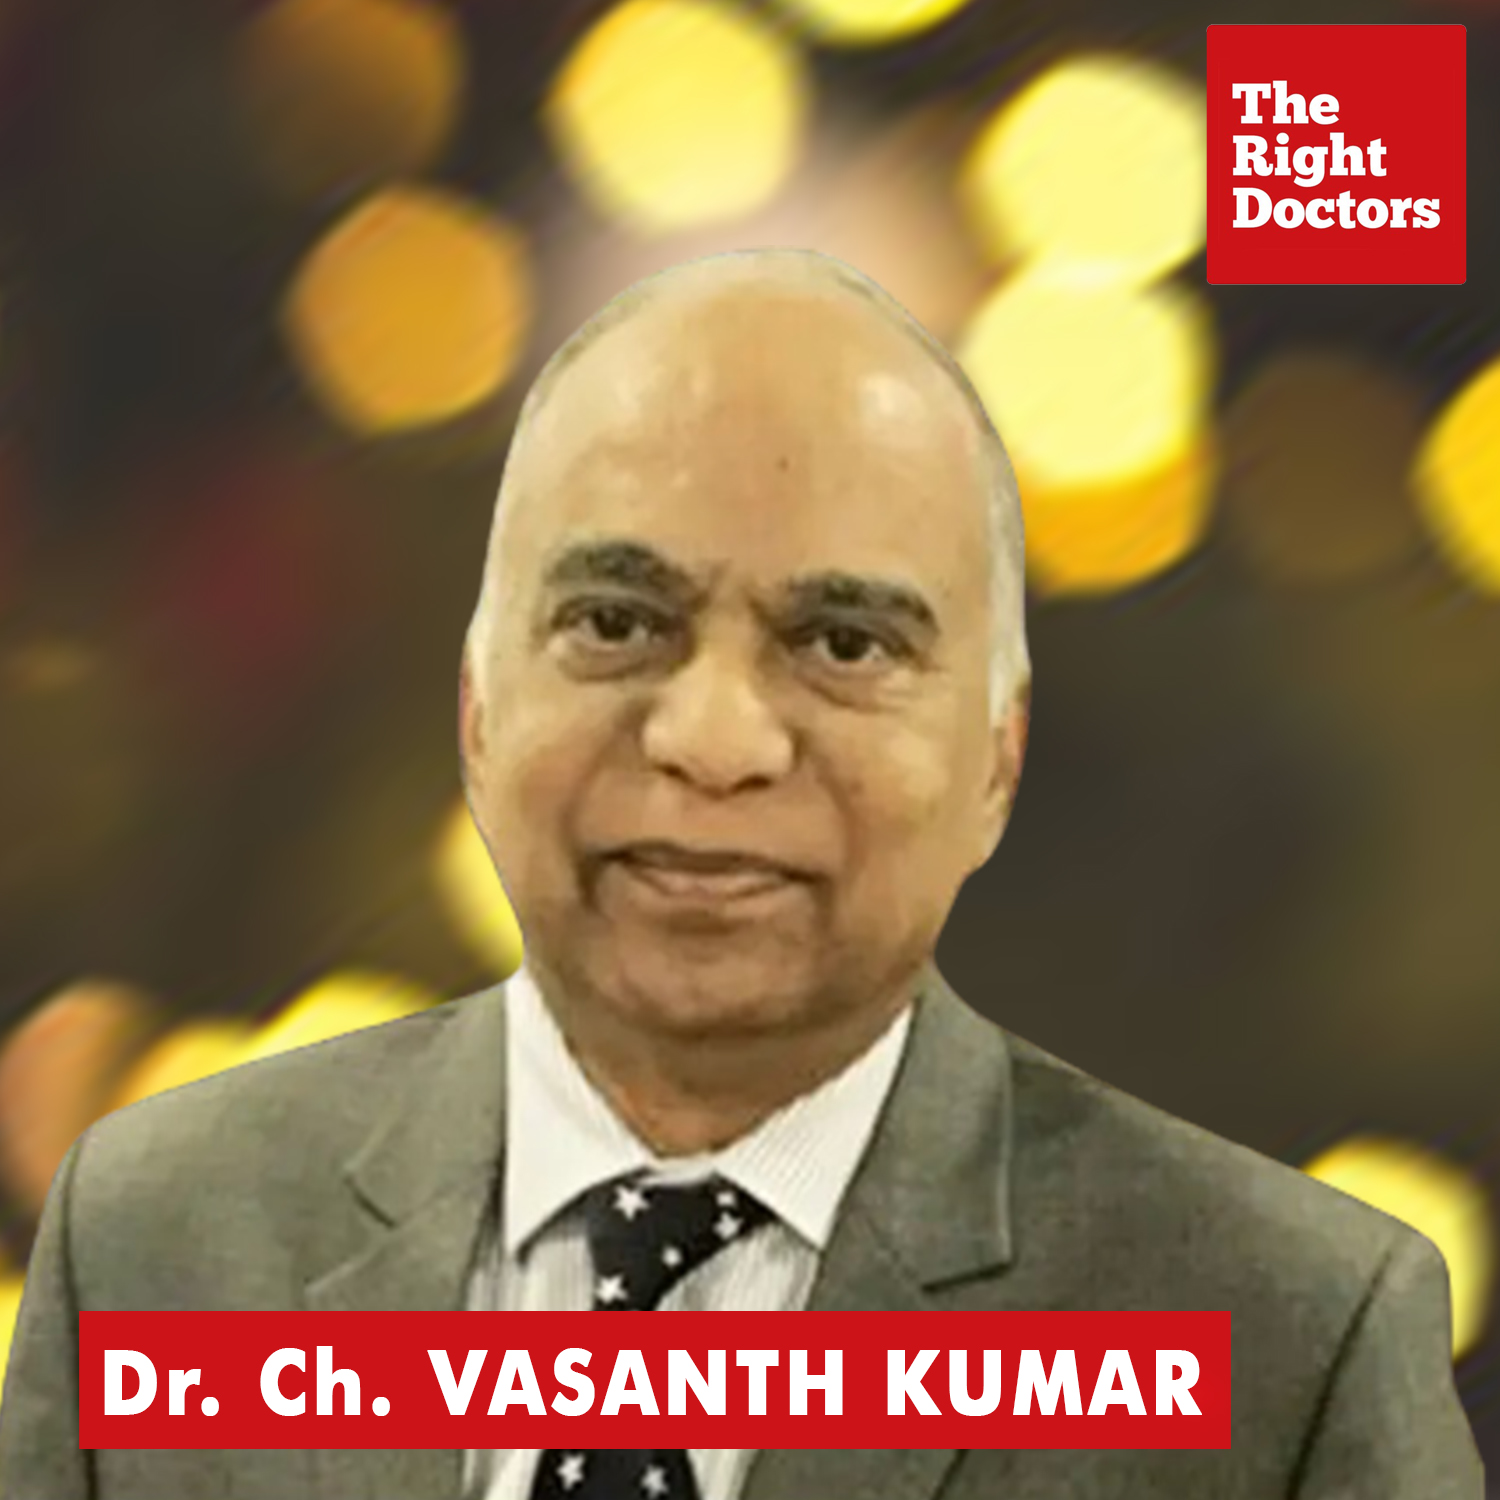 Insights on the current COVID-19 pandemic by Dr. Ch. Vasanth